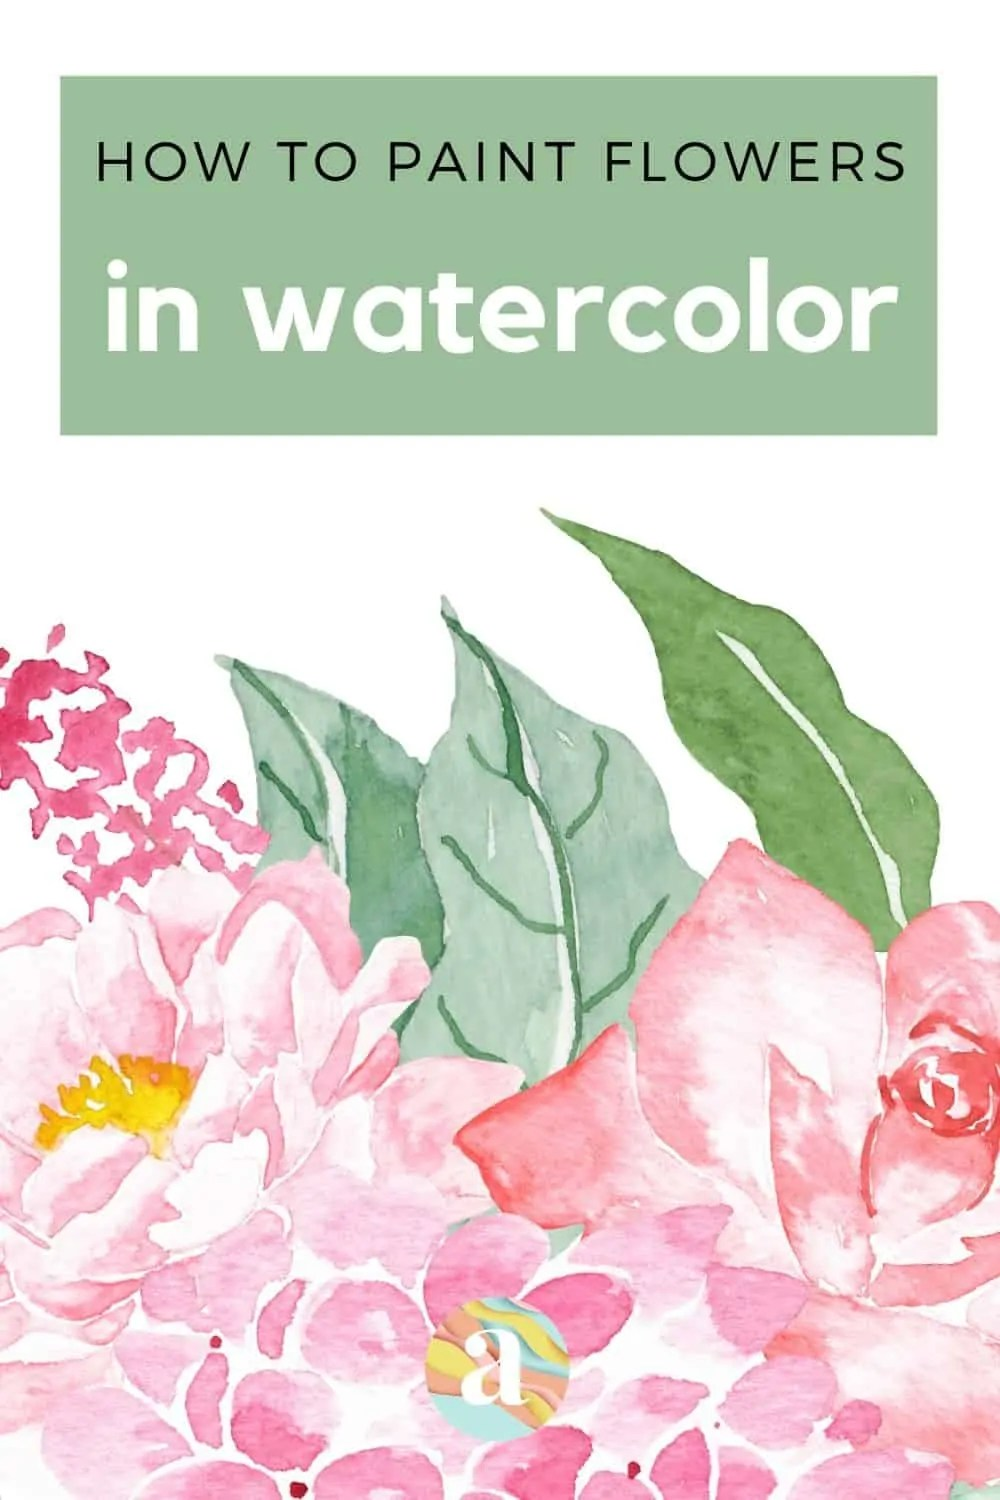 10 Ideas for Your Next Watercolor Painting 37